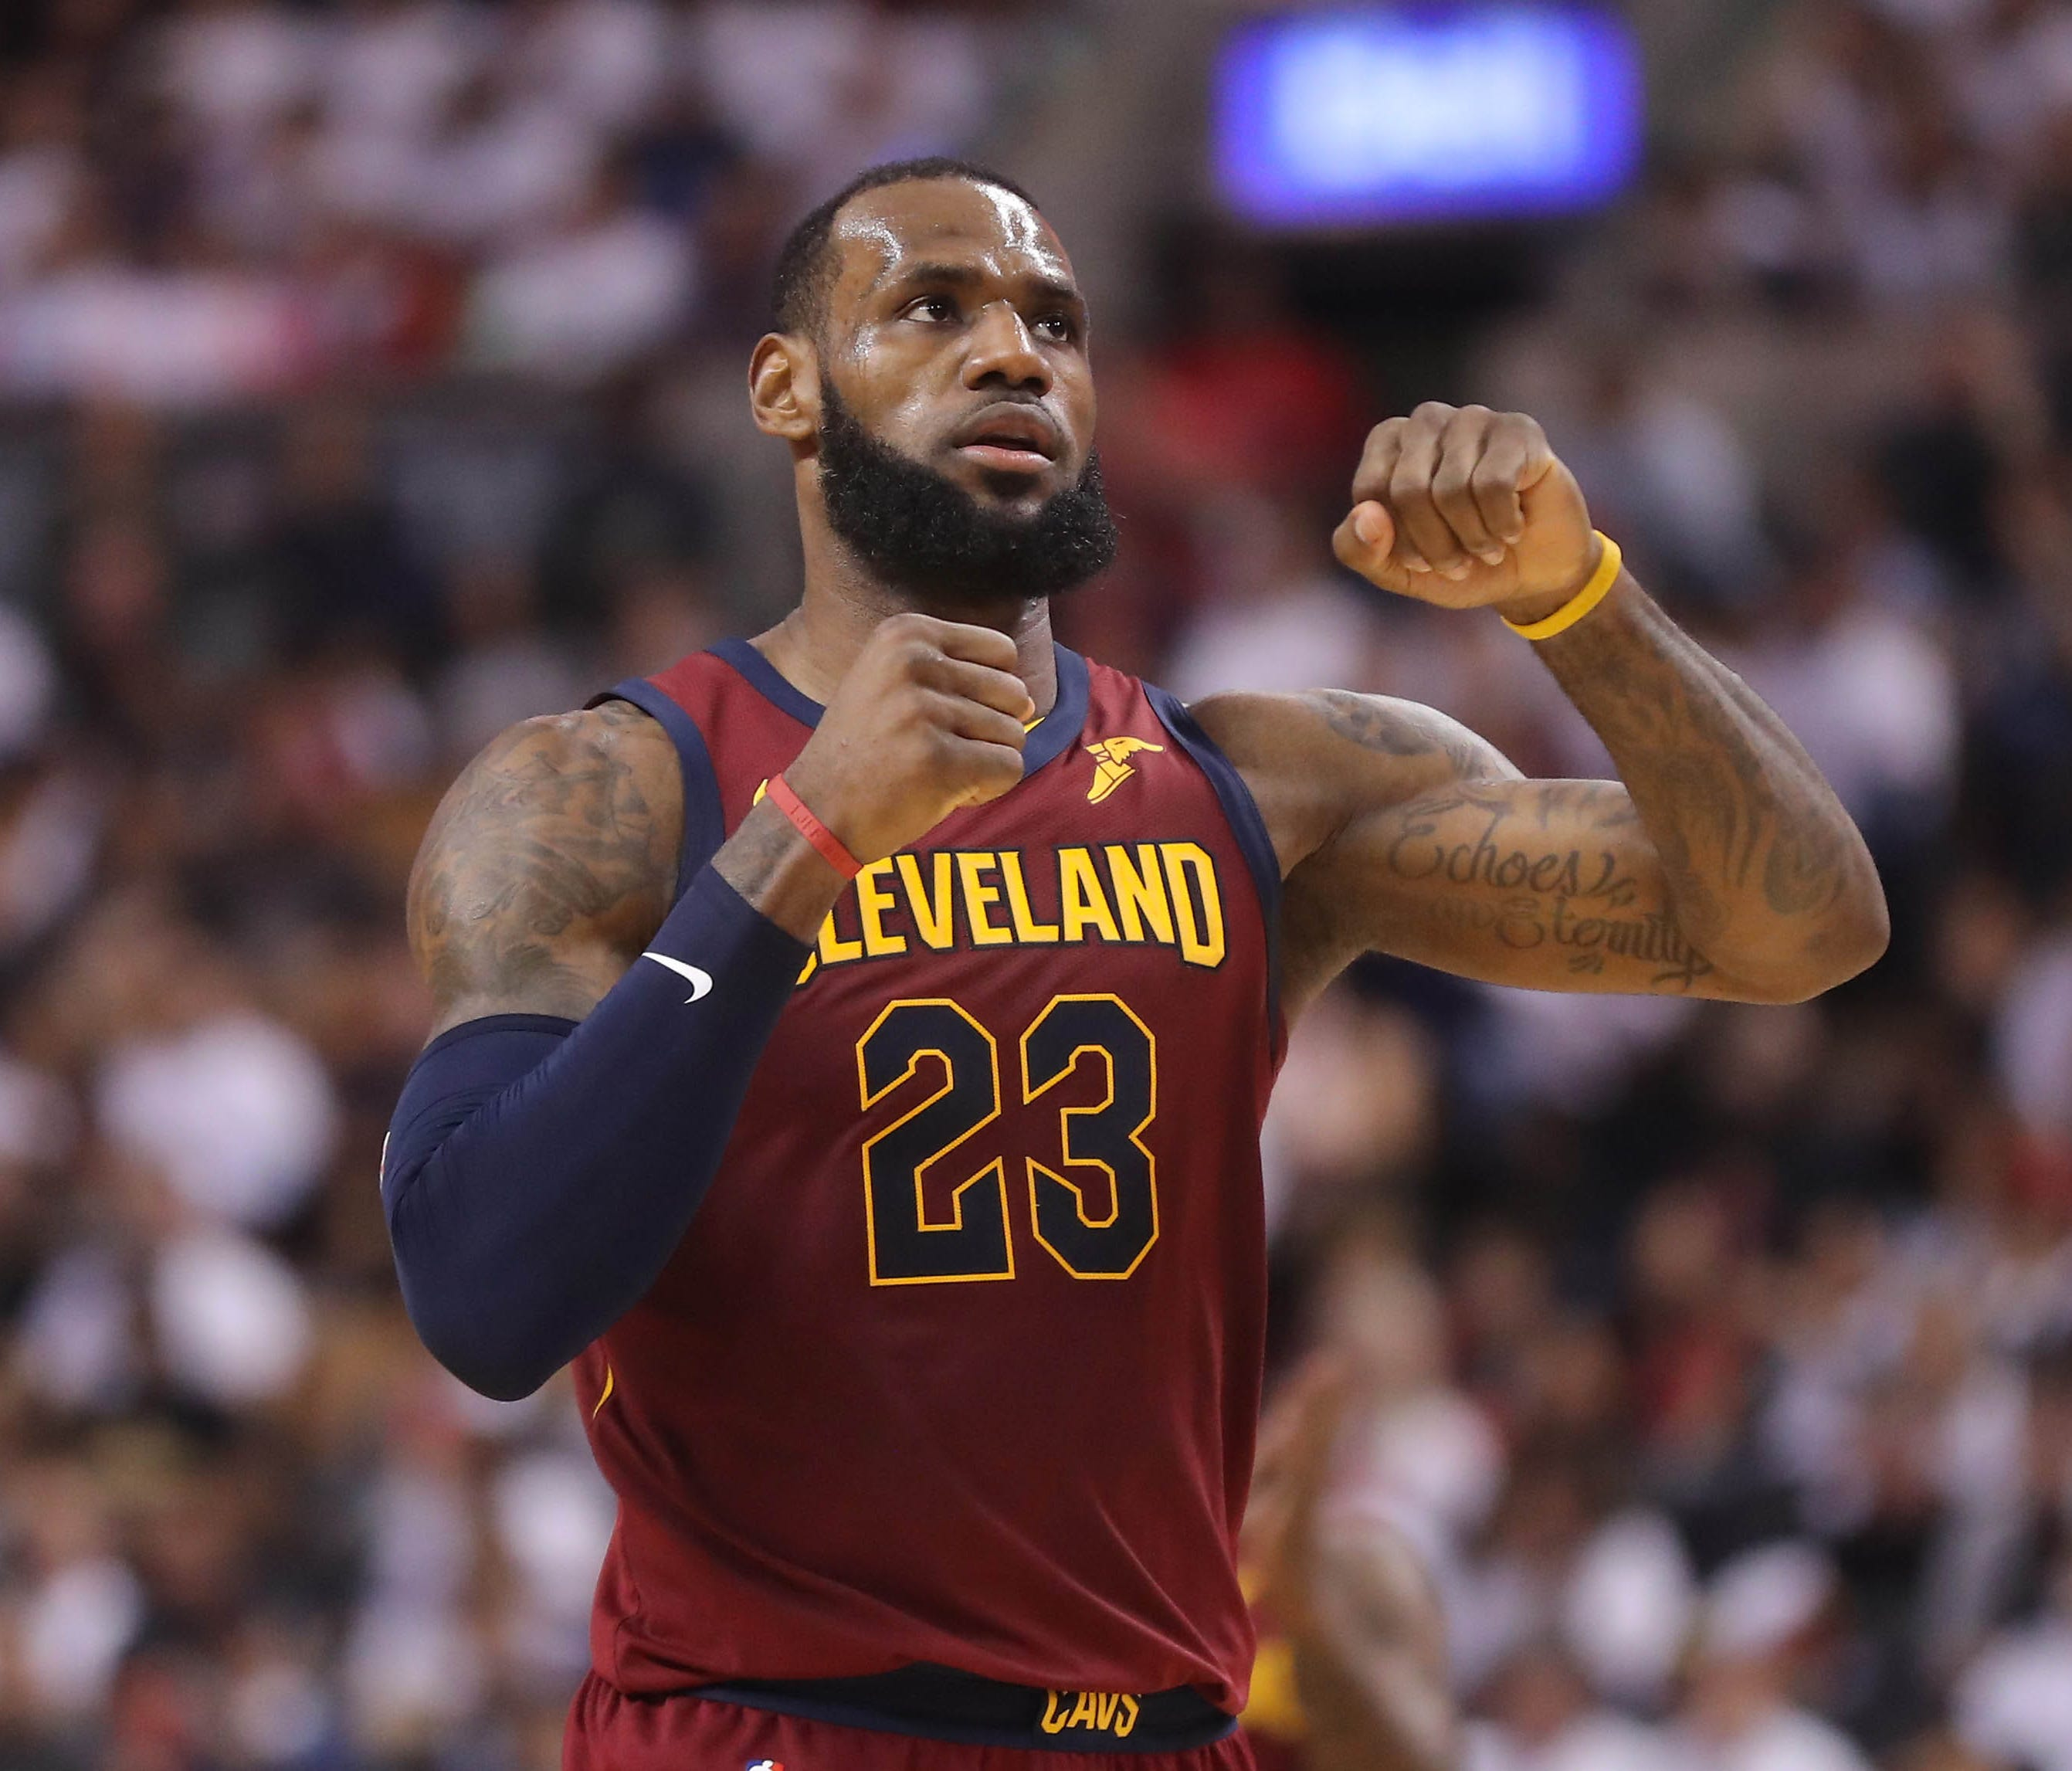 Cleveland Cavaliers forward LeBron James (23) celebrates after making a basket against the Toronto Raptors in game two of the second round of the 2018 NBA Playoffs at Air Canada Centre.